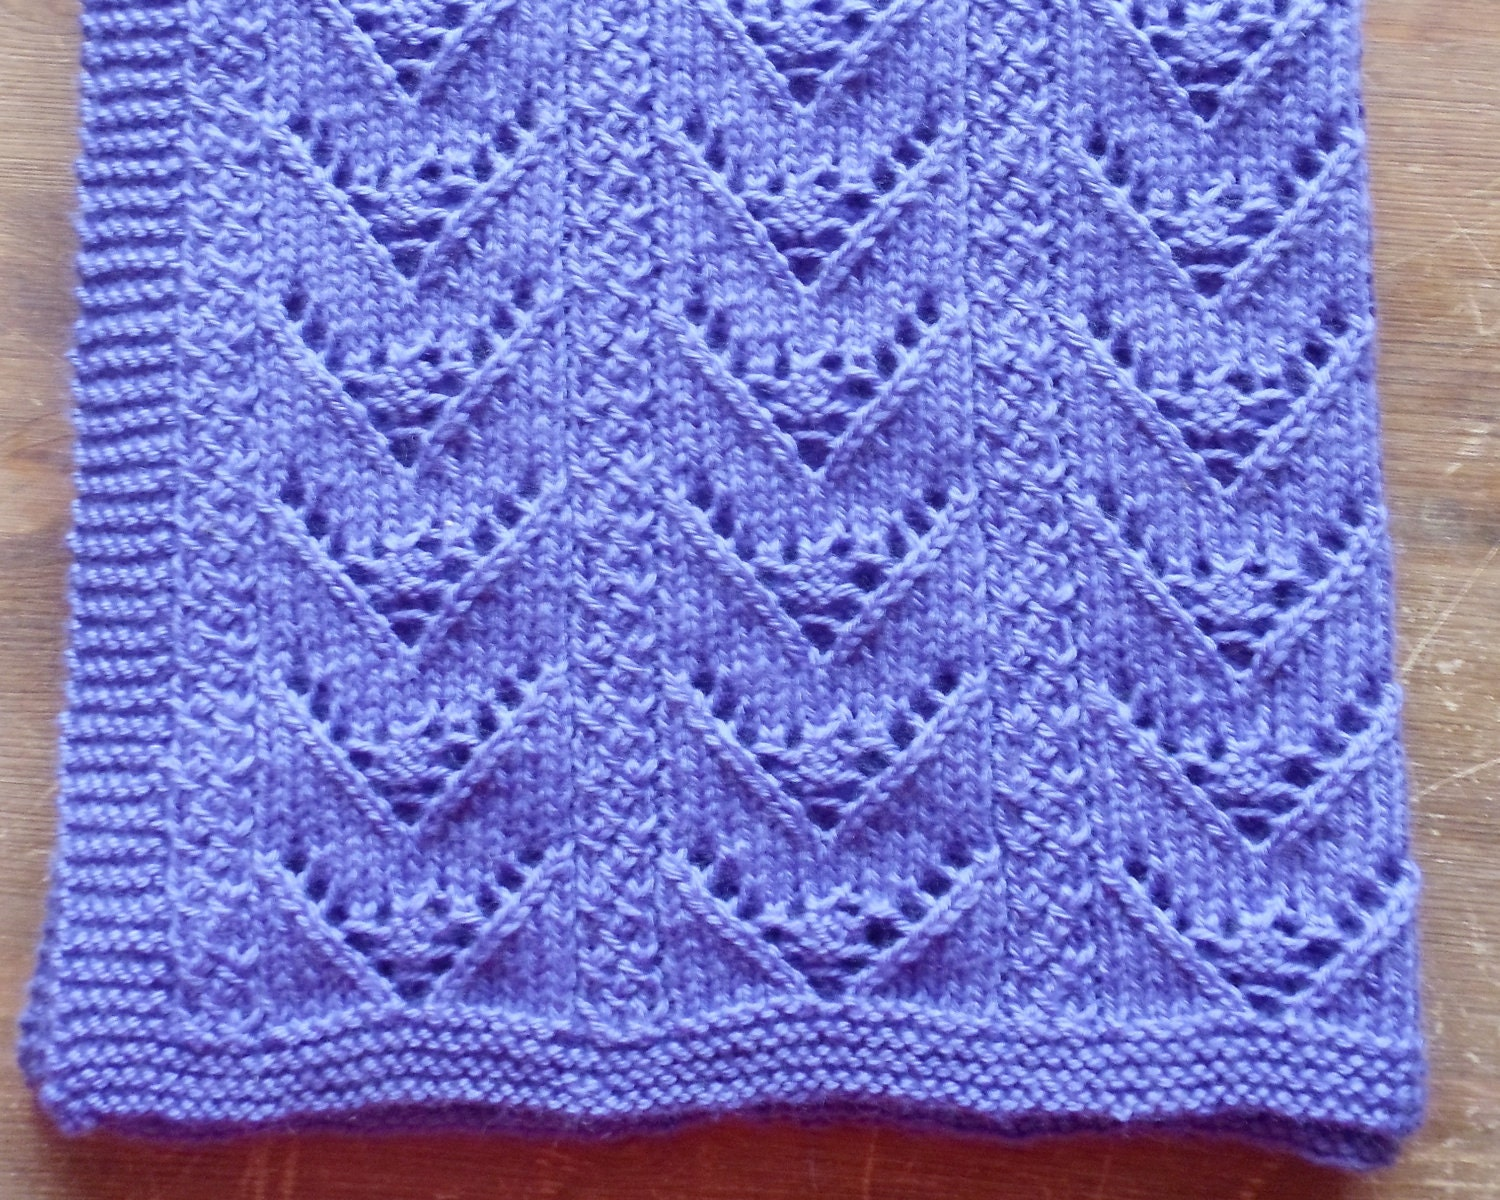 Aran Knitting Patterns For Throws : Aran Baby Blanket Knitting Pattern Instant by TheWoollyKnitter